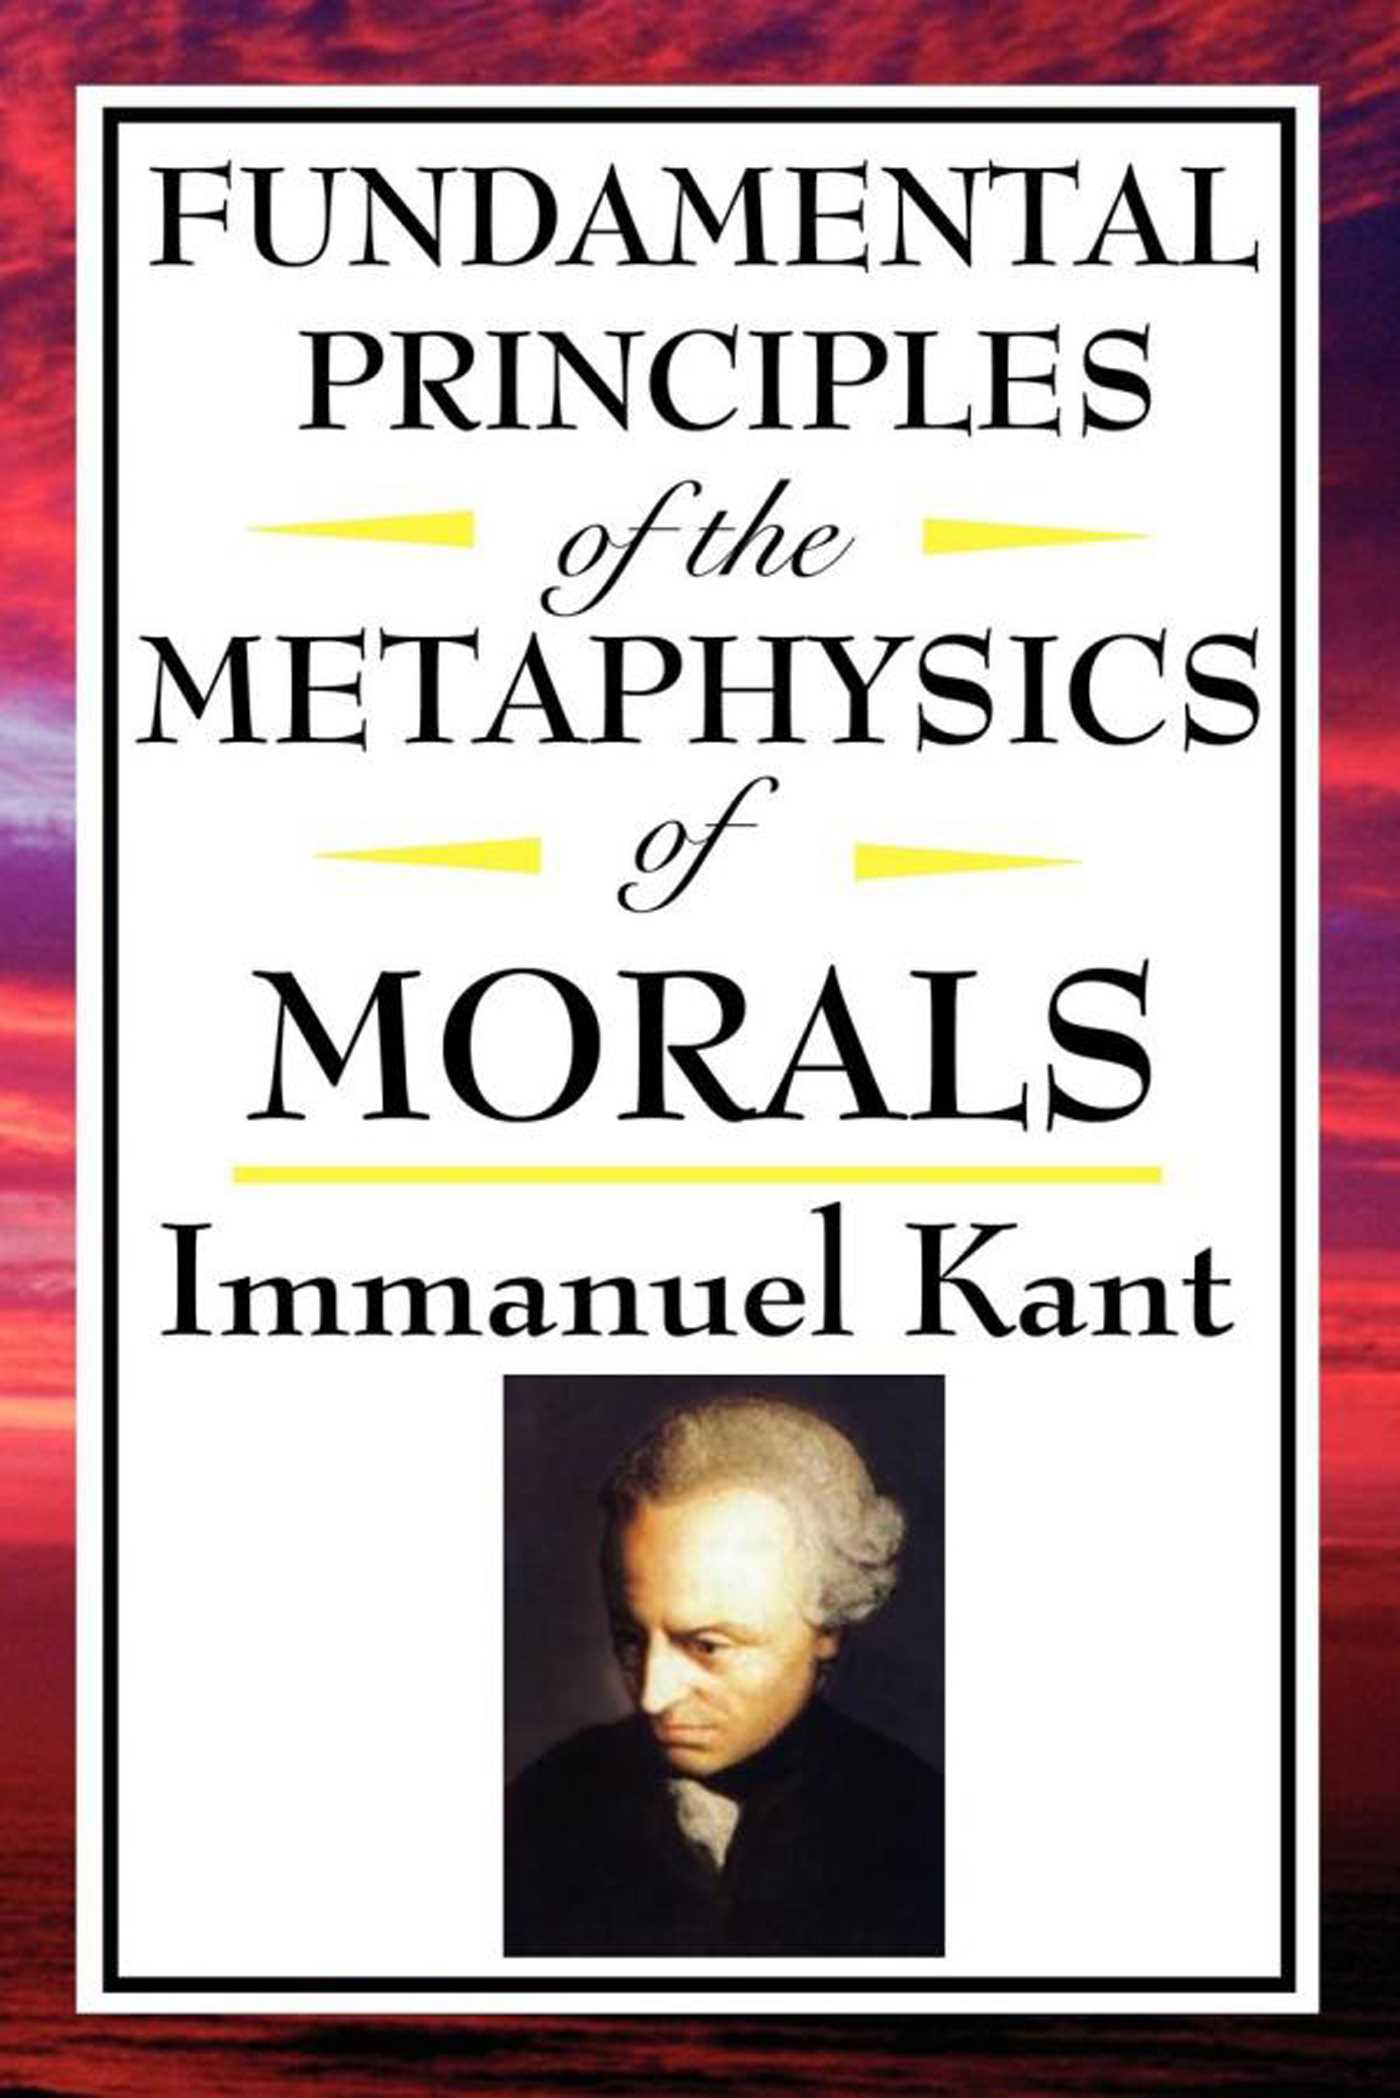 the fundamental principles of the metaphysics of moral by immanuel kant Immanuel kant, fundamental principles of the metaphysics of morals, 1785 1 it is not enough that it conform to the moral law, but it.